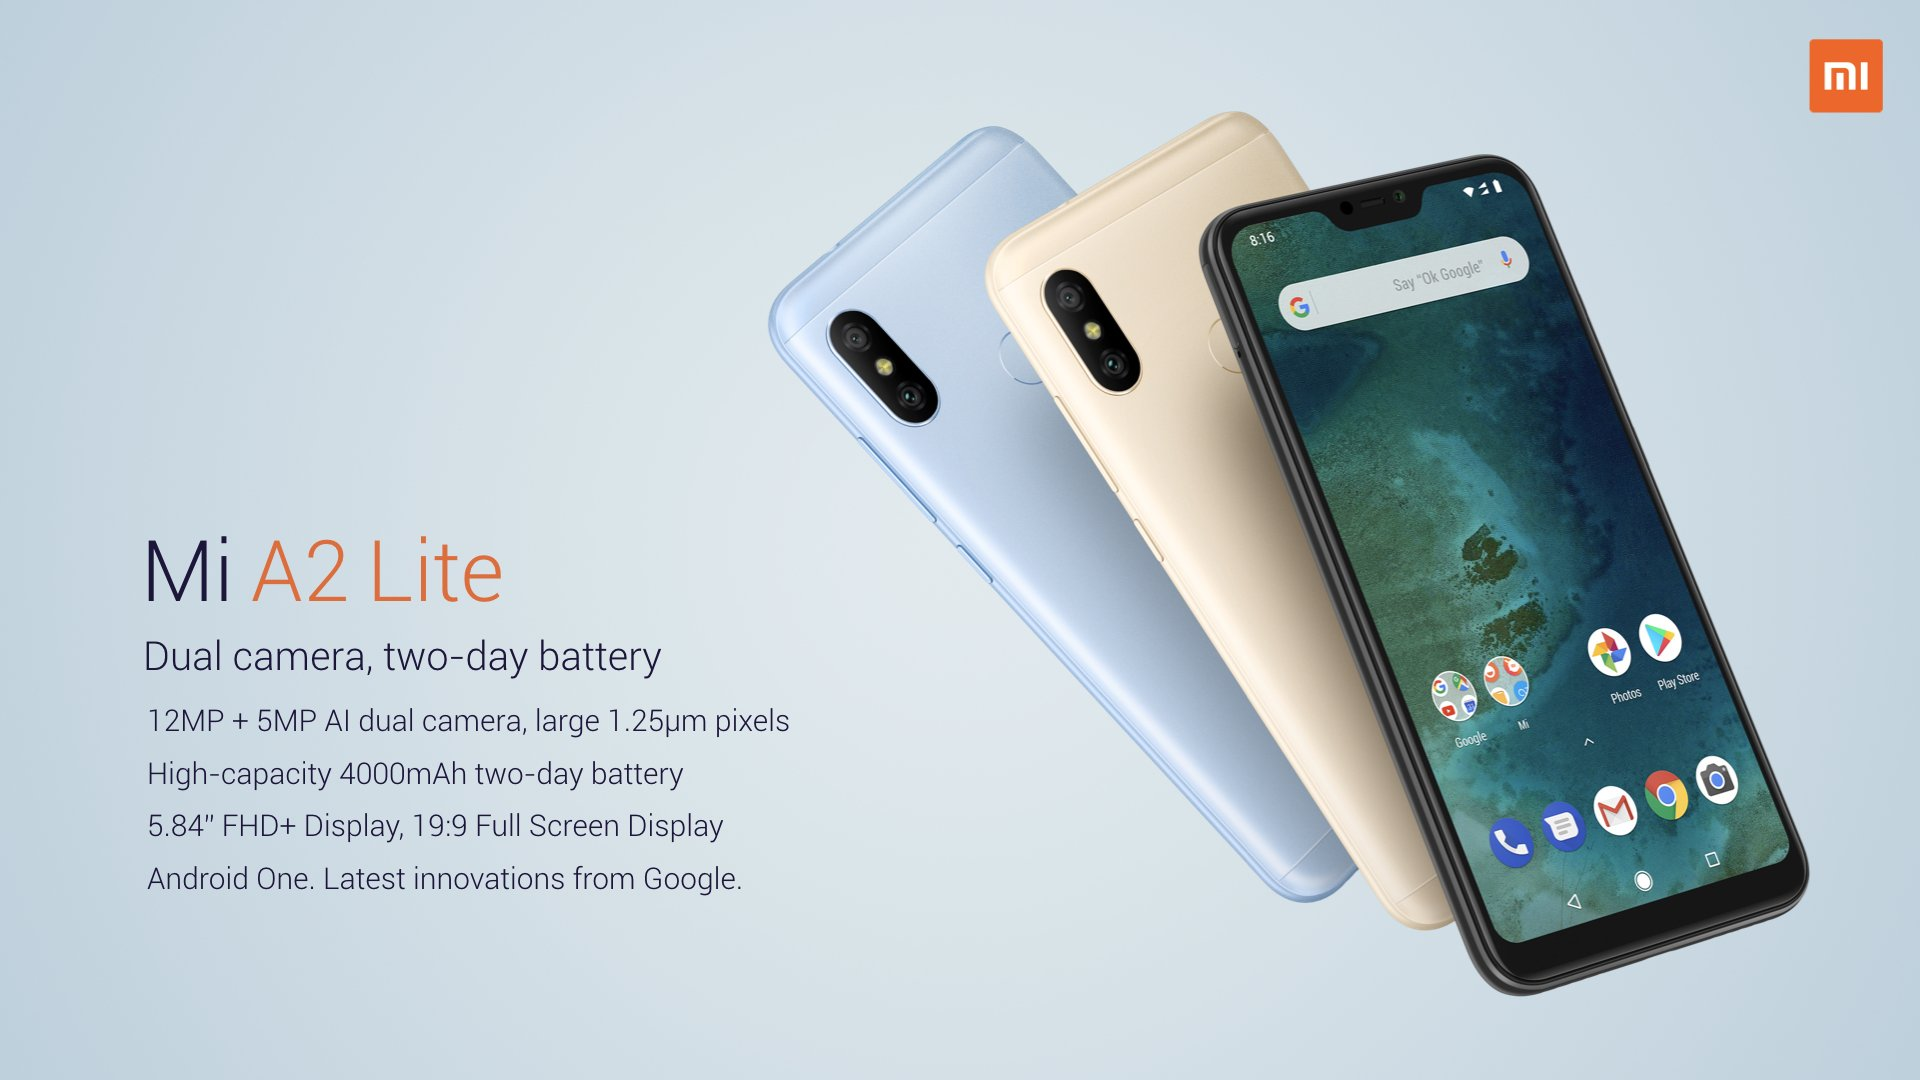 Xiaomi Mi A2 and Mi A2 Lite are now official - Here's all you need to know 4